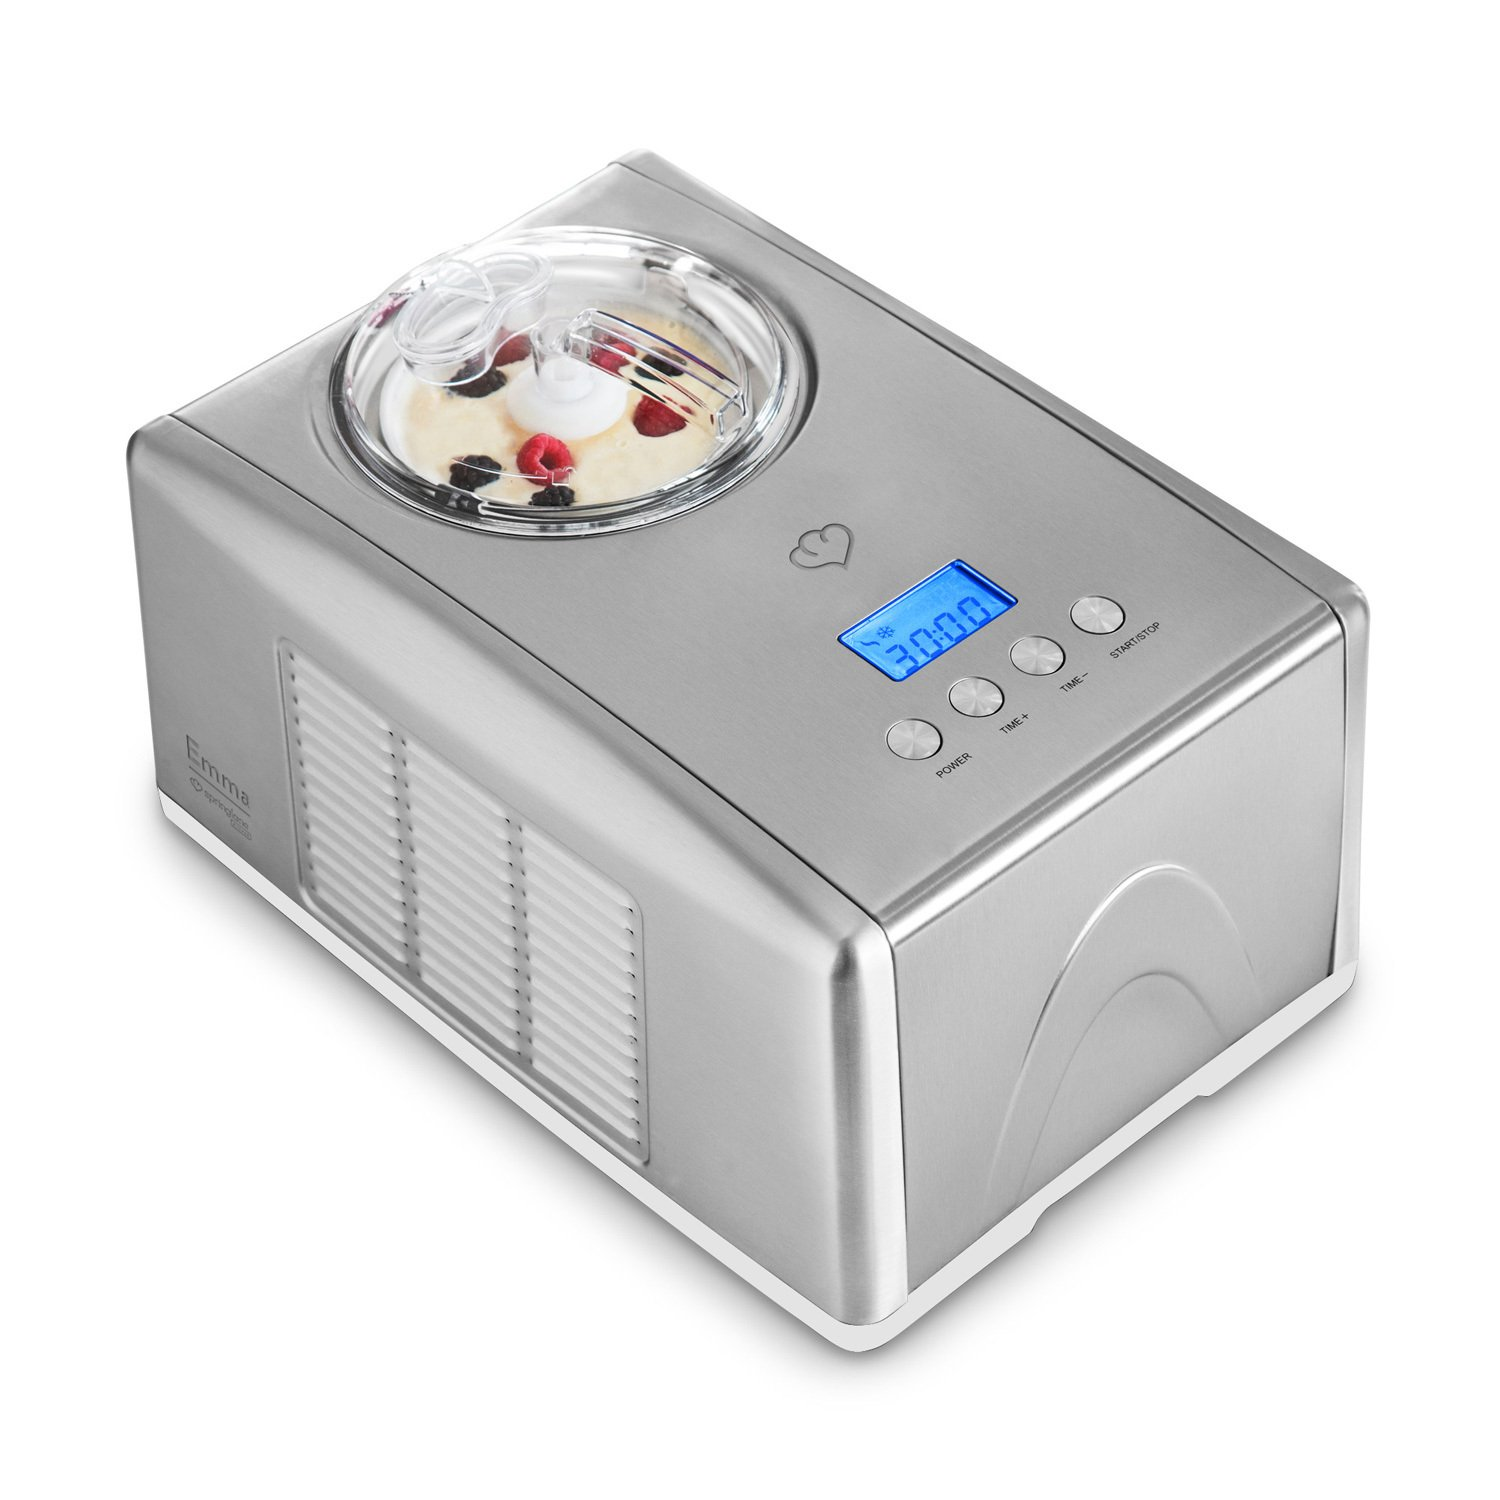 Ice-Cream Maker Emma (150 W) with Built-in Compressor by Springlane Kitchen 1.5 L Premium Ice Cream Machine, Stainless Steel, Removable Ice Cream Container, No Pre-Freezing, LCD Display